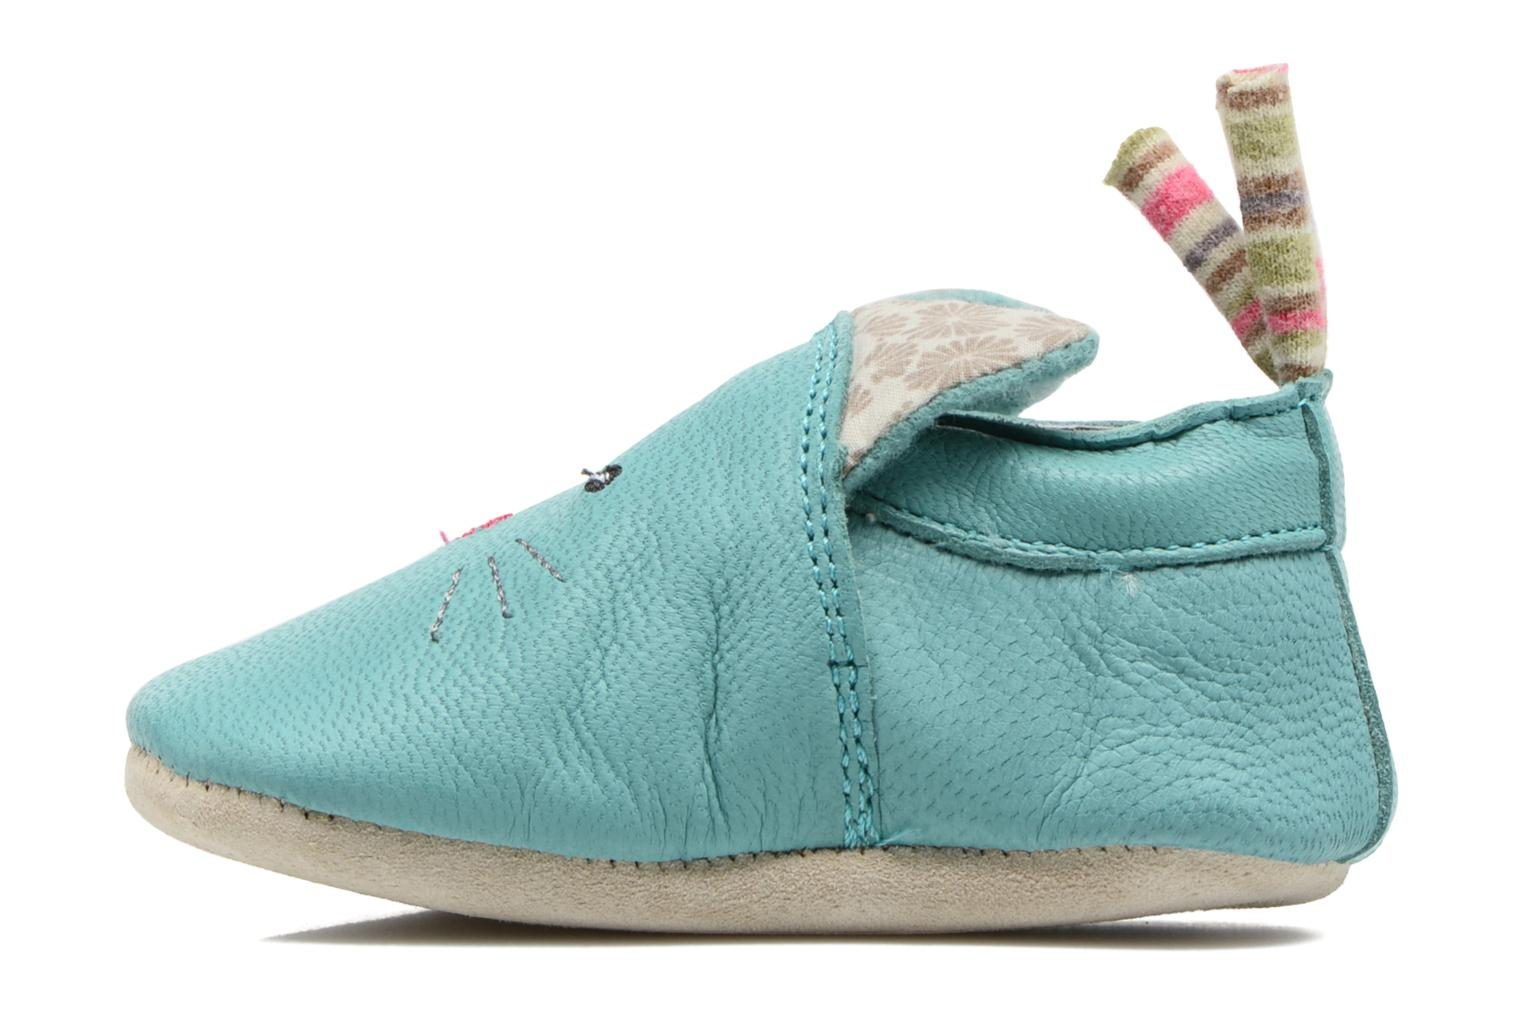 Chaussons Babybotte Chat - Moulin Roty Bleu vue face